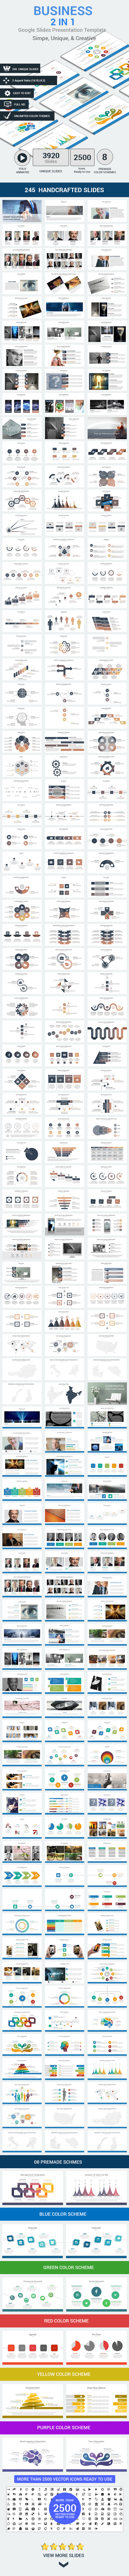 Business 2 in 1 Google Slides Template Bundle - Google Slides Presentation Templates